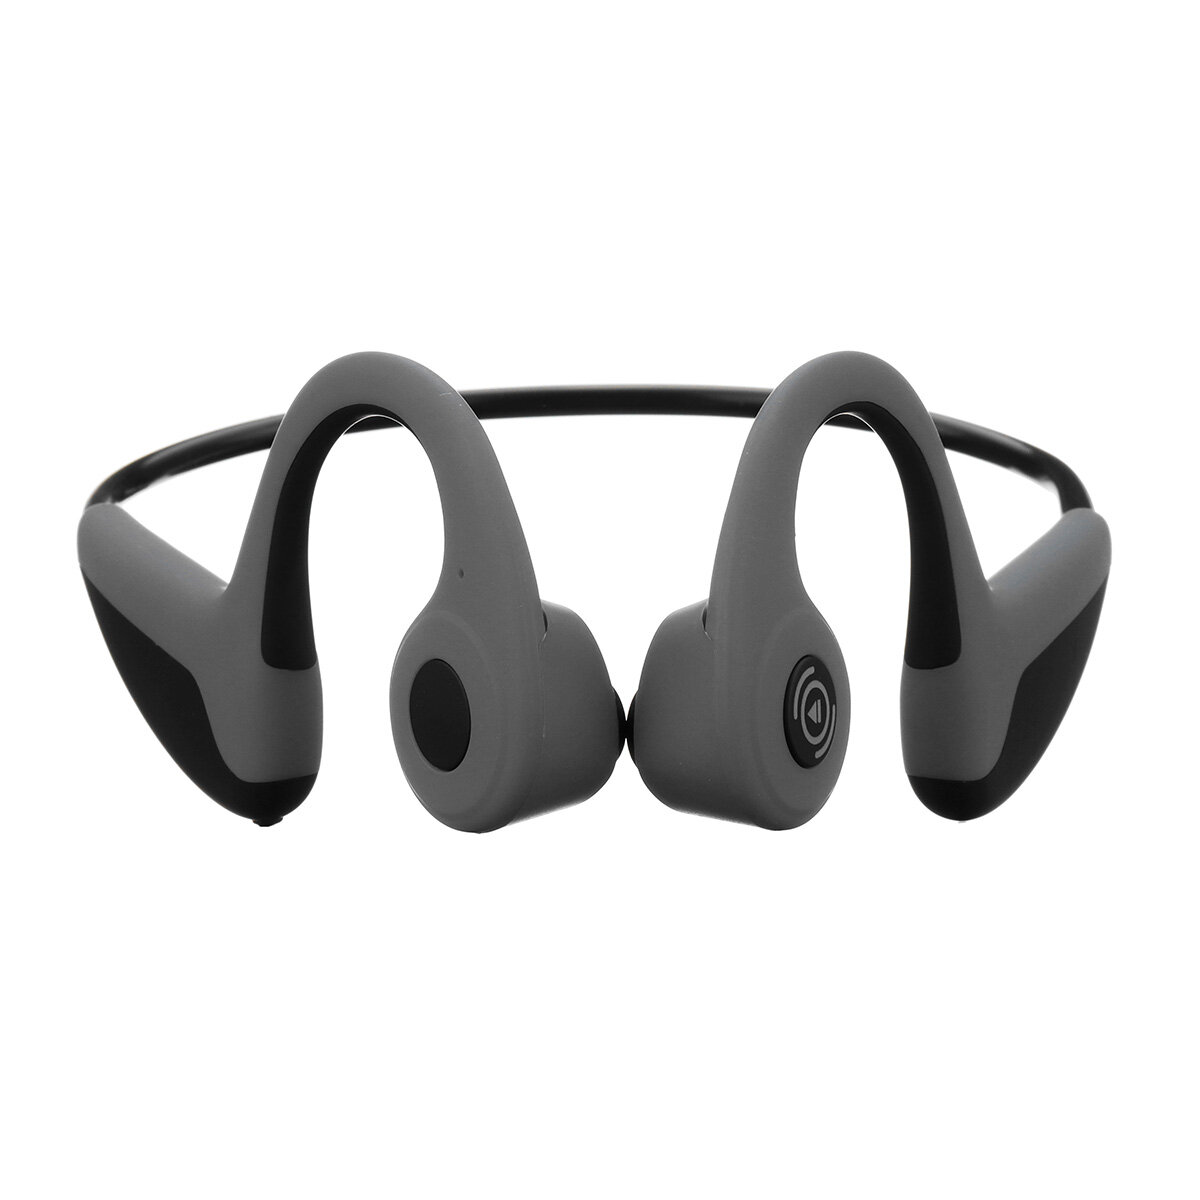 hight resolution of fmj wireless smart bone conduction bluetooth 5 0 headset waterproof sports handsfree earphone headphone black cod